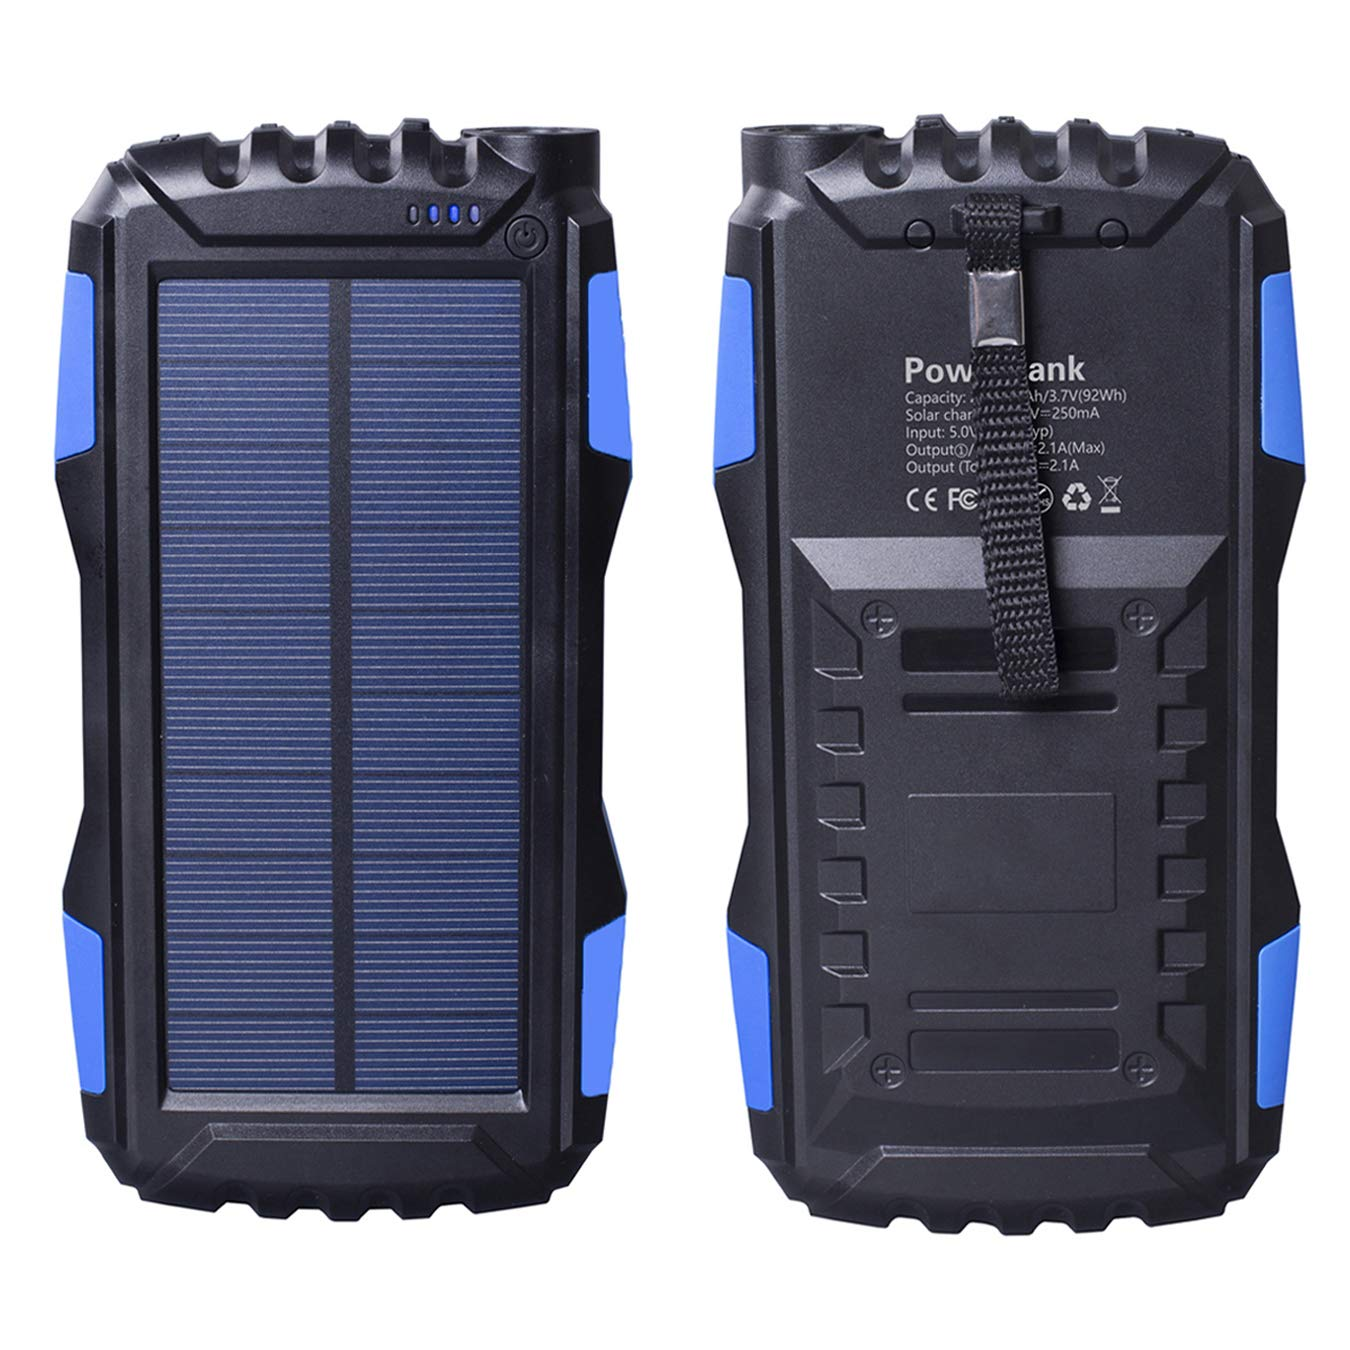 Solar Charger, Gootu 25000mAhPortable Solar Power Bankwith Dual USBOutputPorts andLEDFlashlightfor Outdoor & Indoor Use, External Battery Packfor iPhone, iPad, Android Phones and More (Blue)